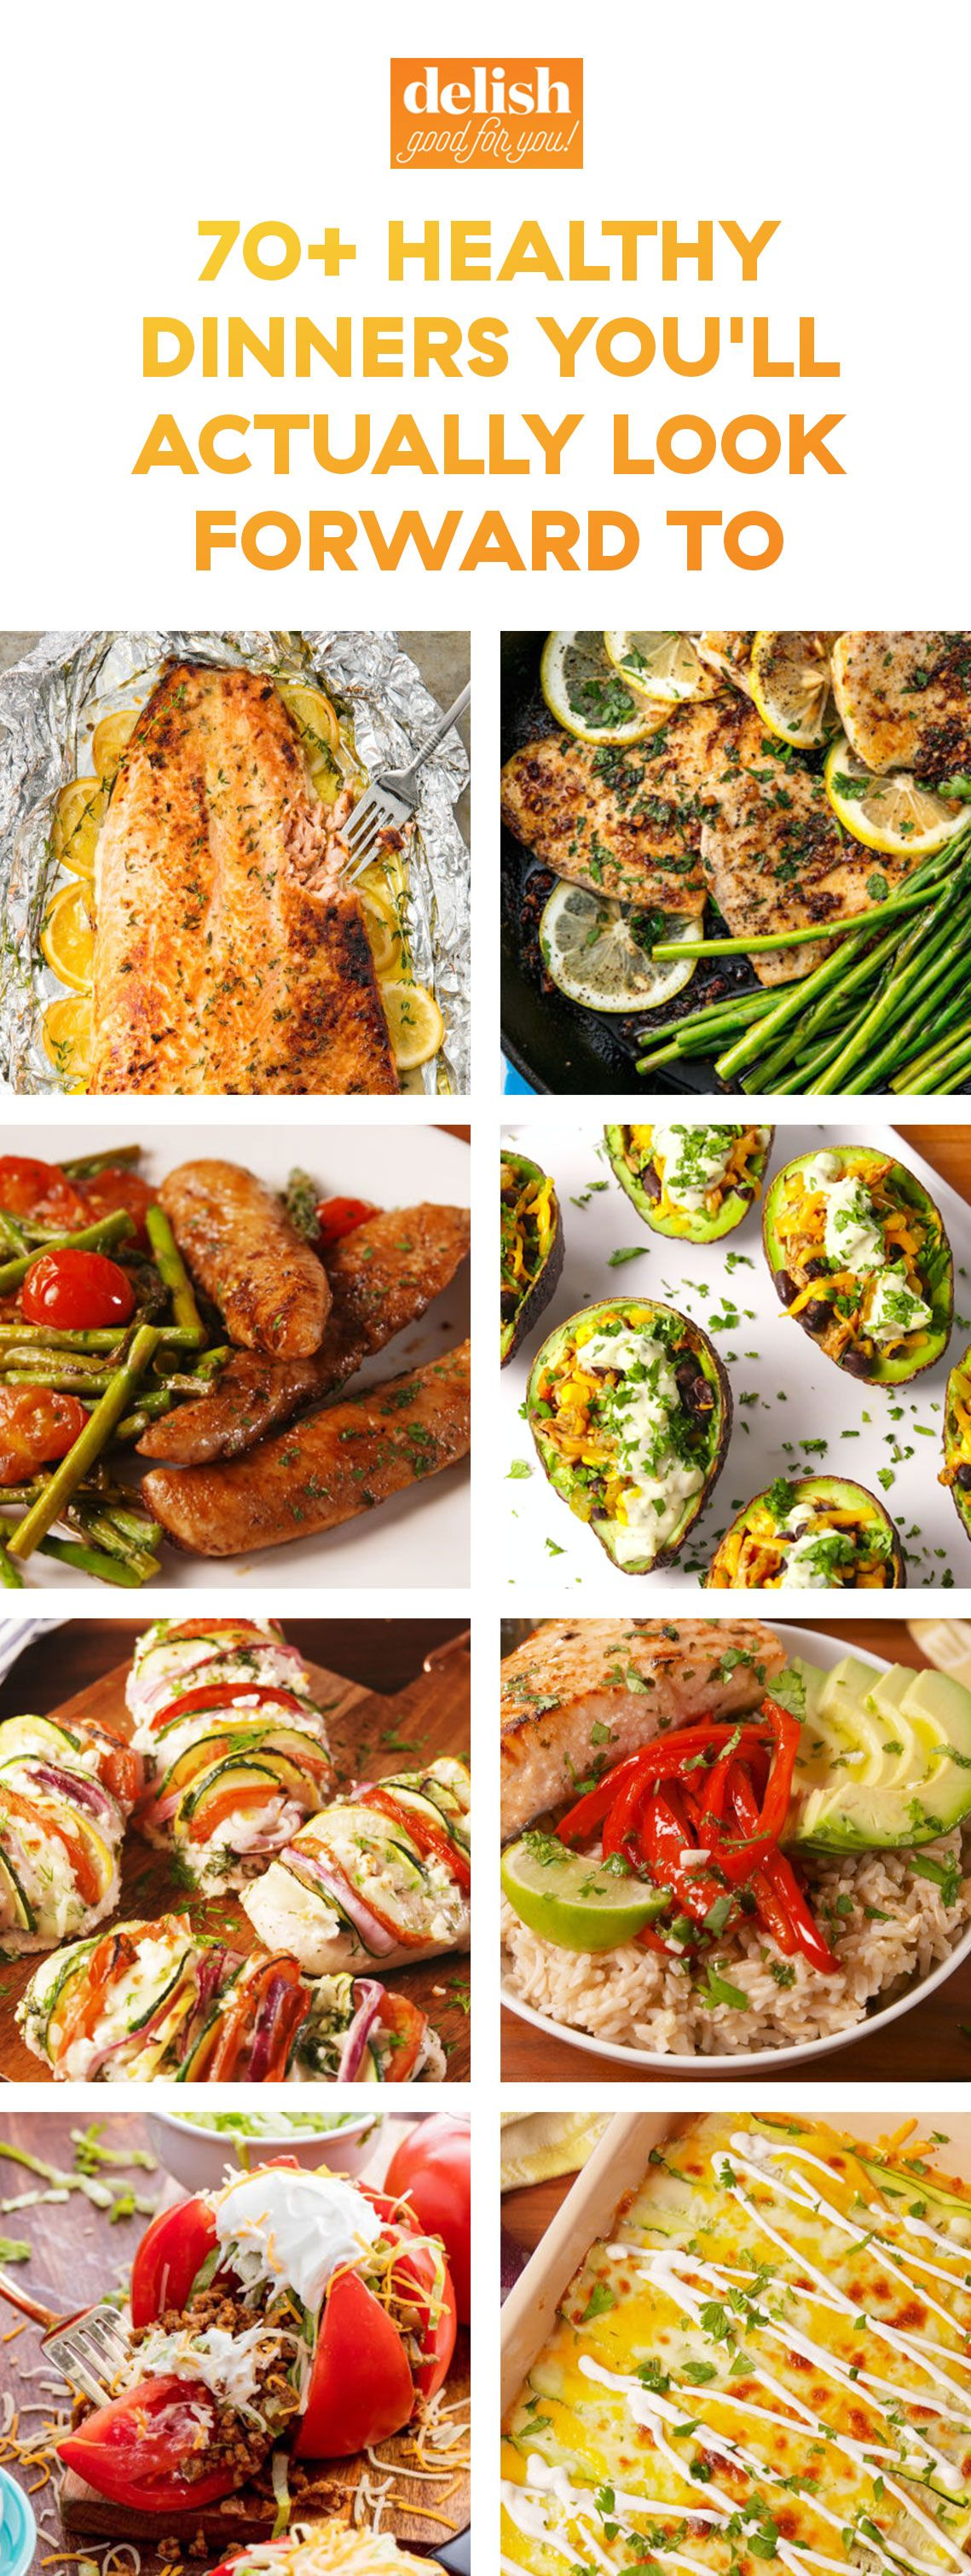 80 easy healthy dinner ideas best recipes for healthy dinners 80 easy healthy dinner ideas best recipes for healthy dinnersdelish forumfinder Image collections